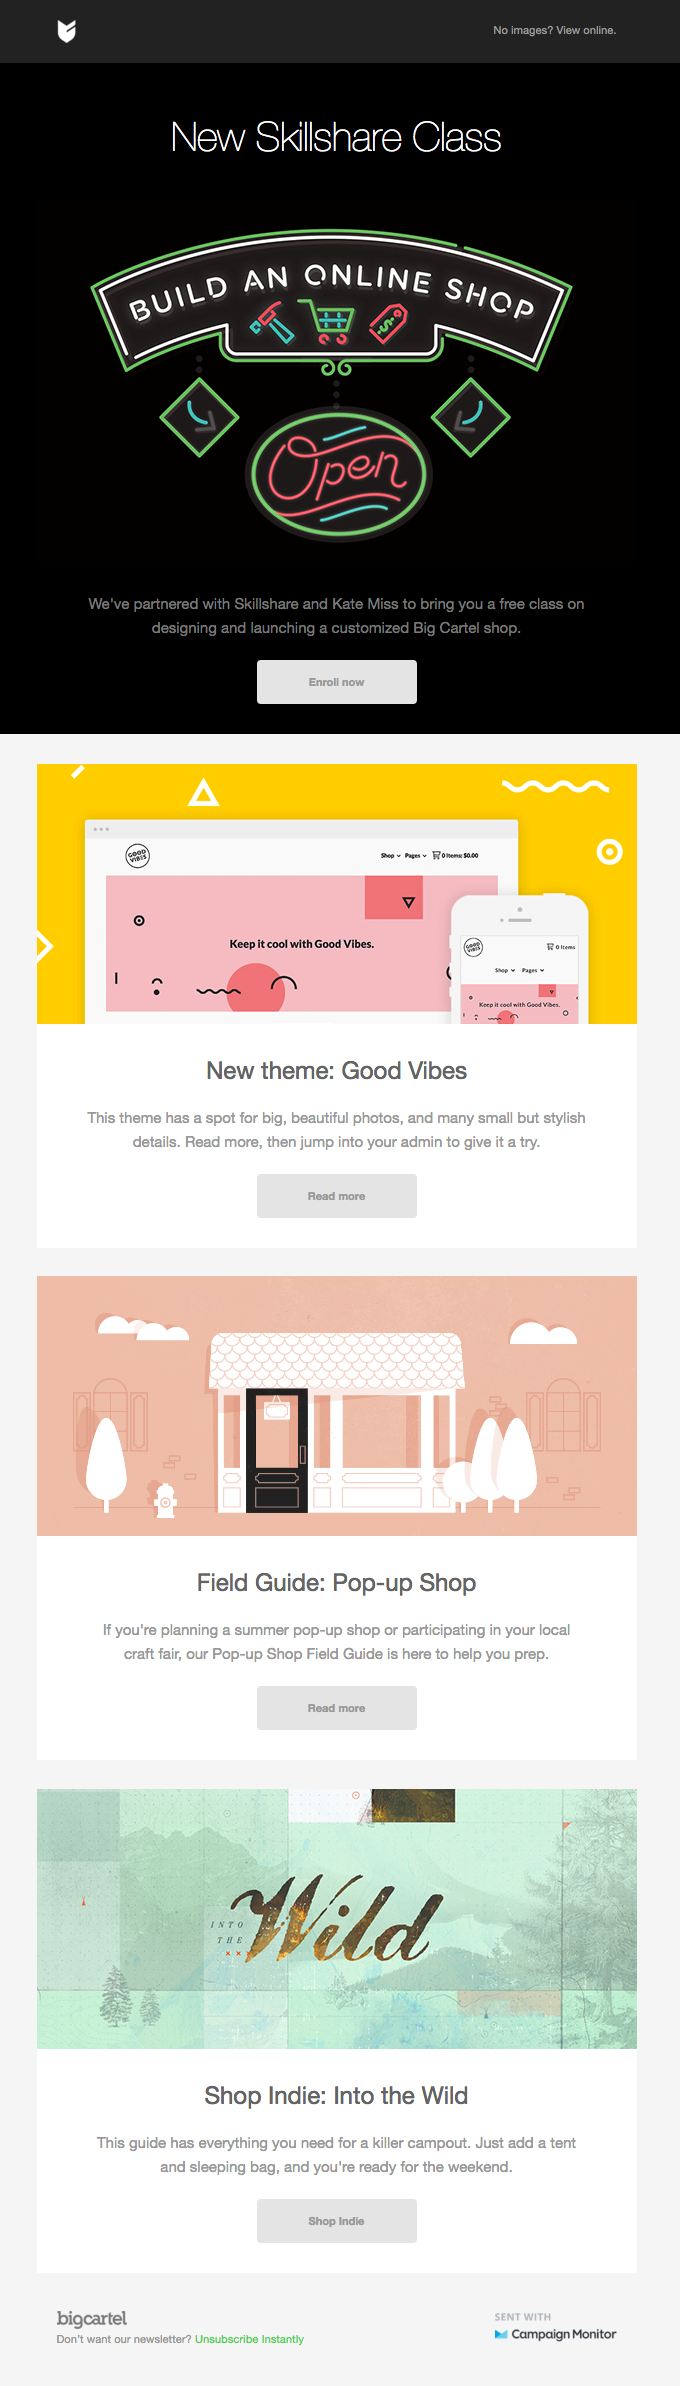 A free Skillshare class, a new theme, and more | Really Good